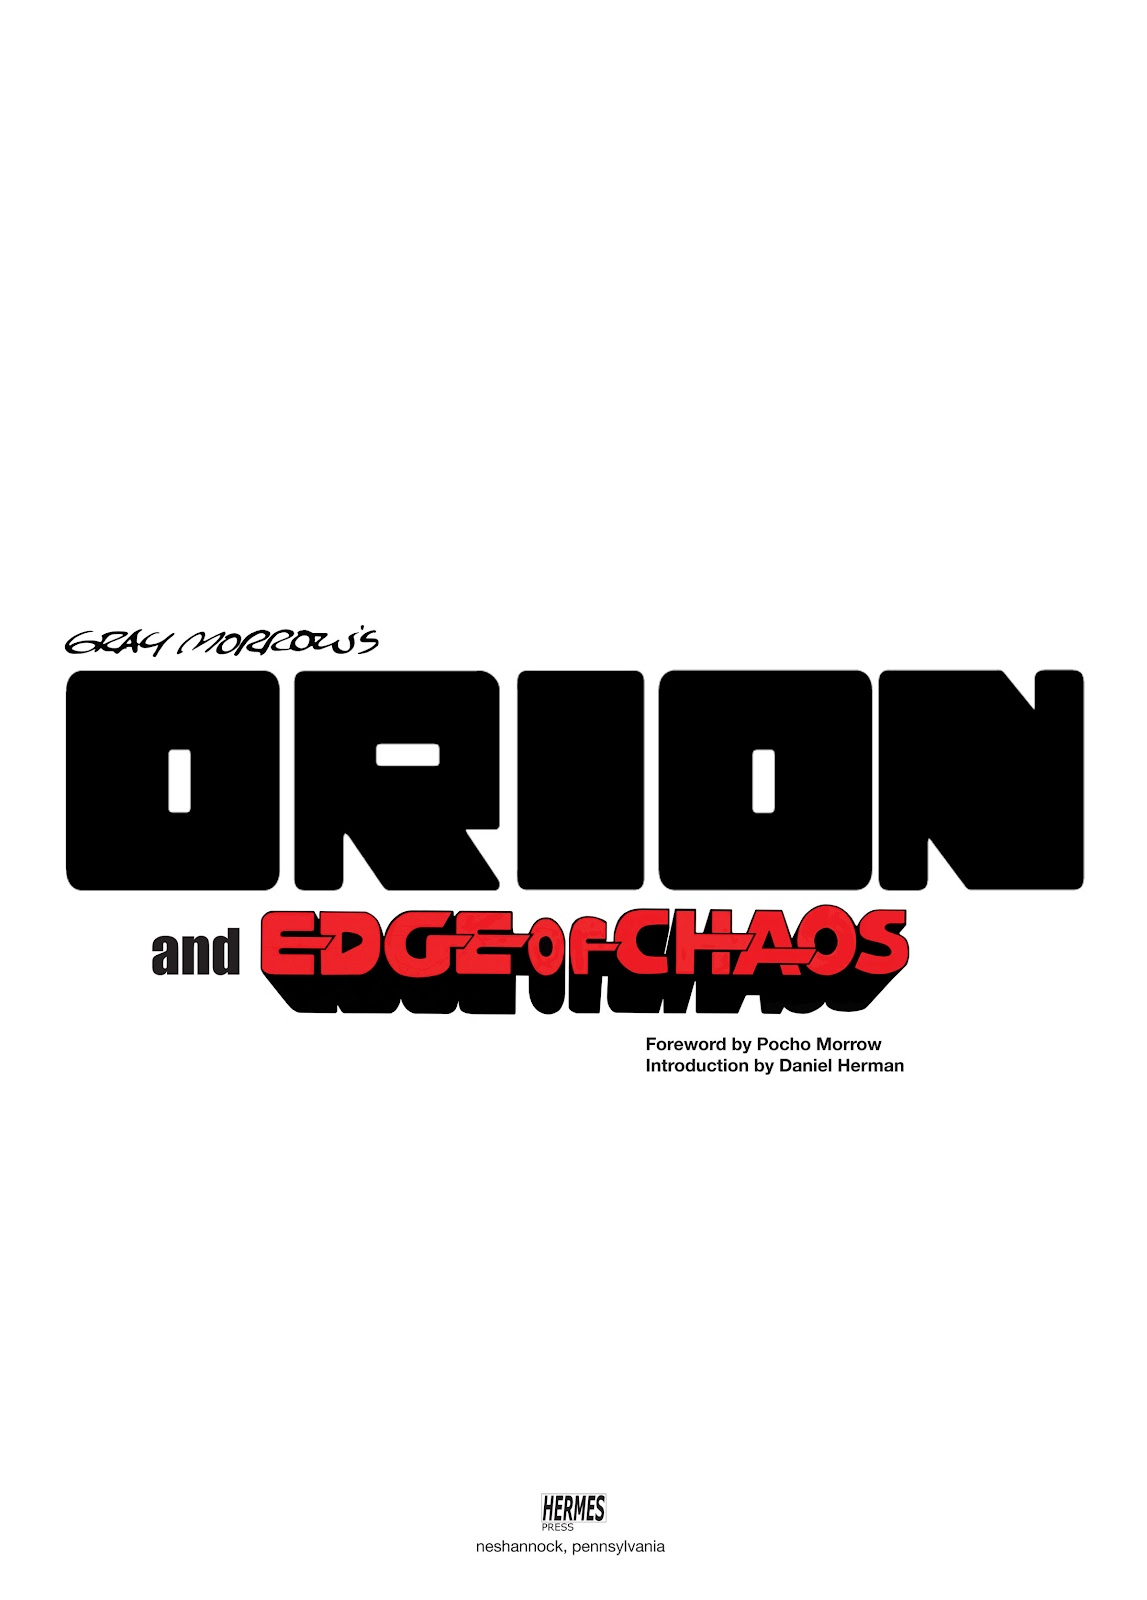 Read online Orion and Edge of Chaos comic -  Issue # TPB - 2